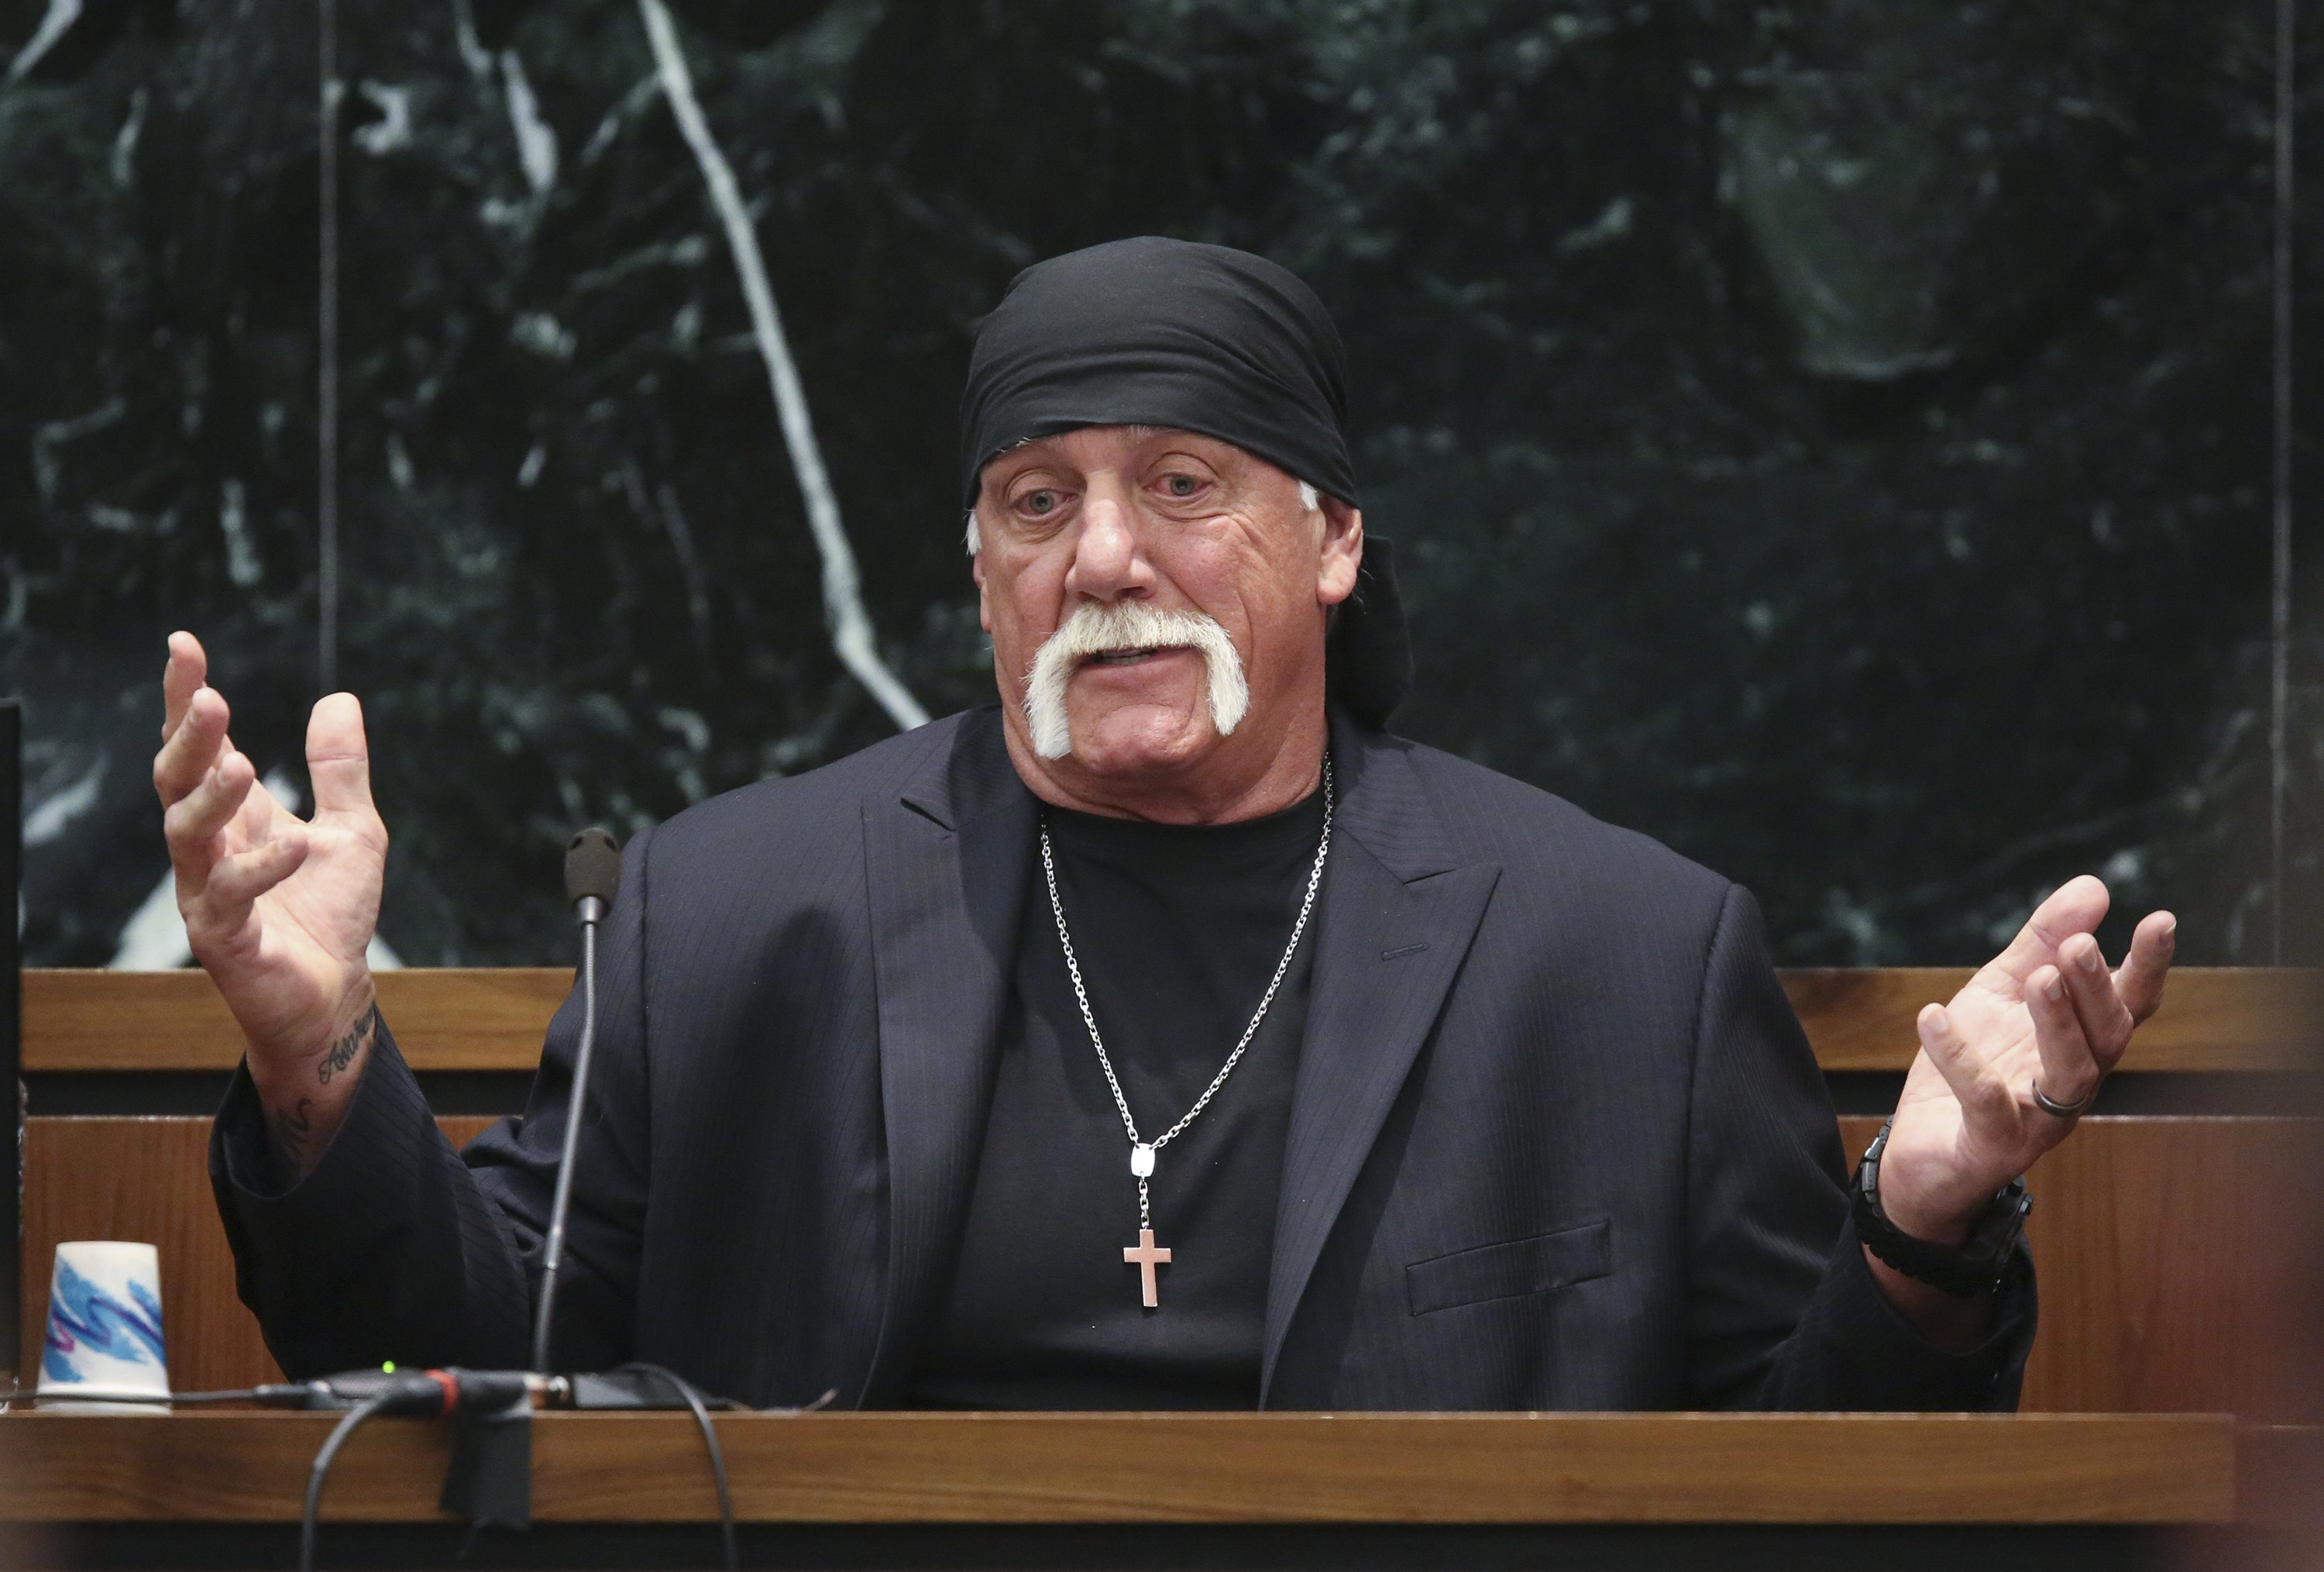 Terry Bollea, aka Hulk Hogan, testifies under cross-examination in his $100 million defamation against Gawker Media, in St. Petersburg, Fla., March 8, 2016. A lawyer for Gawker, which posted a video of Bollea having extra-marital sex in 2012, said that his penchant for flaunting sexual conquests was material to the case; Bollea maintained it was purely an act and part of his wrestling persona. (John Pendygraft/Pool via The New York Times) -- FOR EDITORIAL USE ONLY --